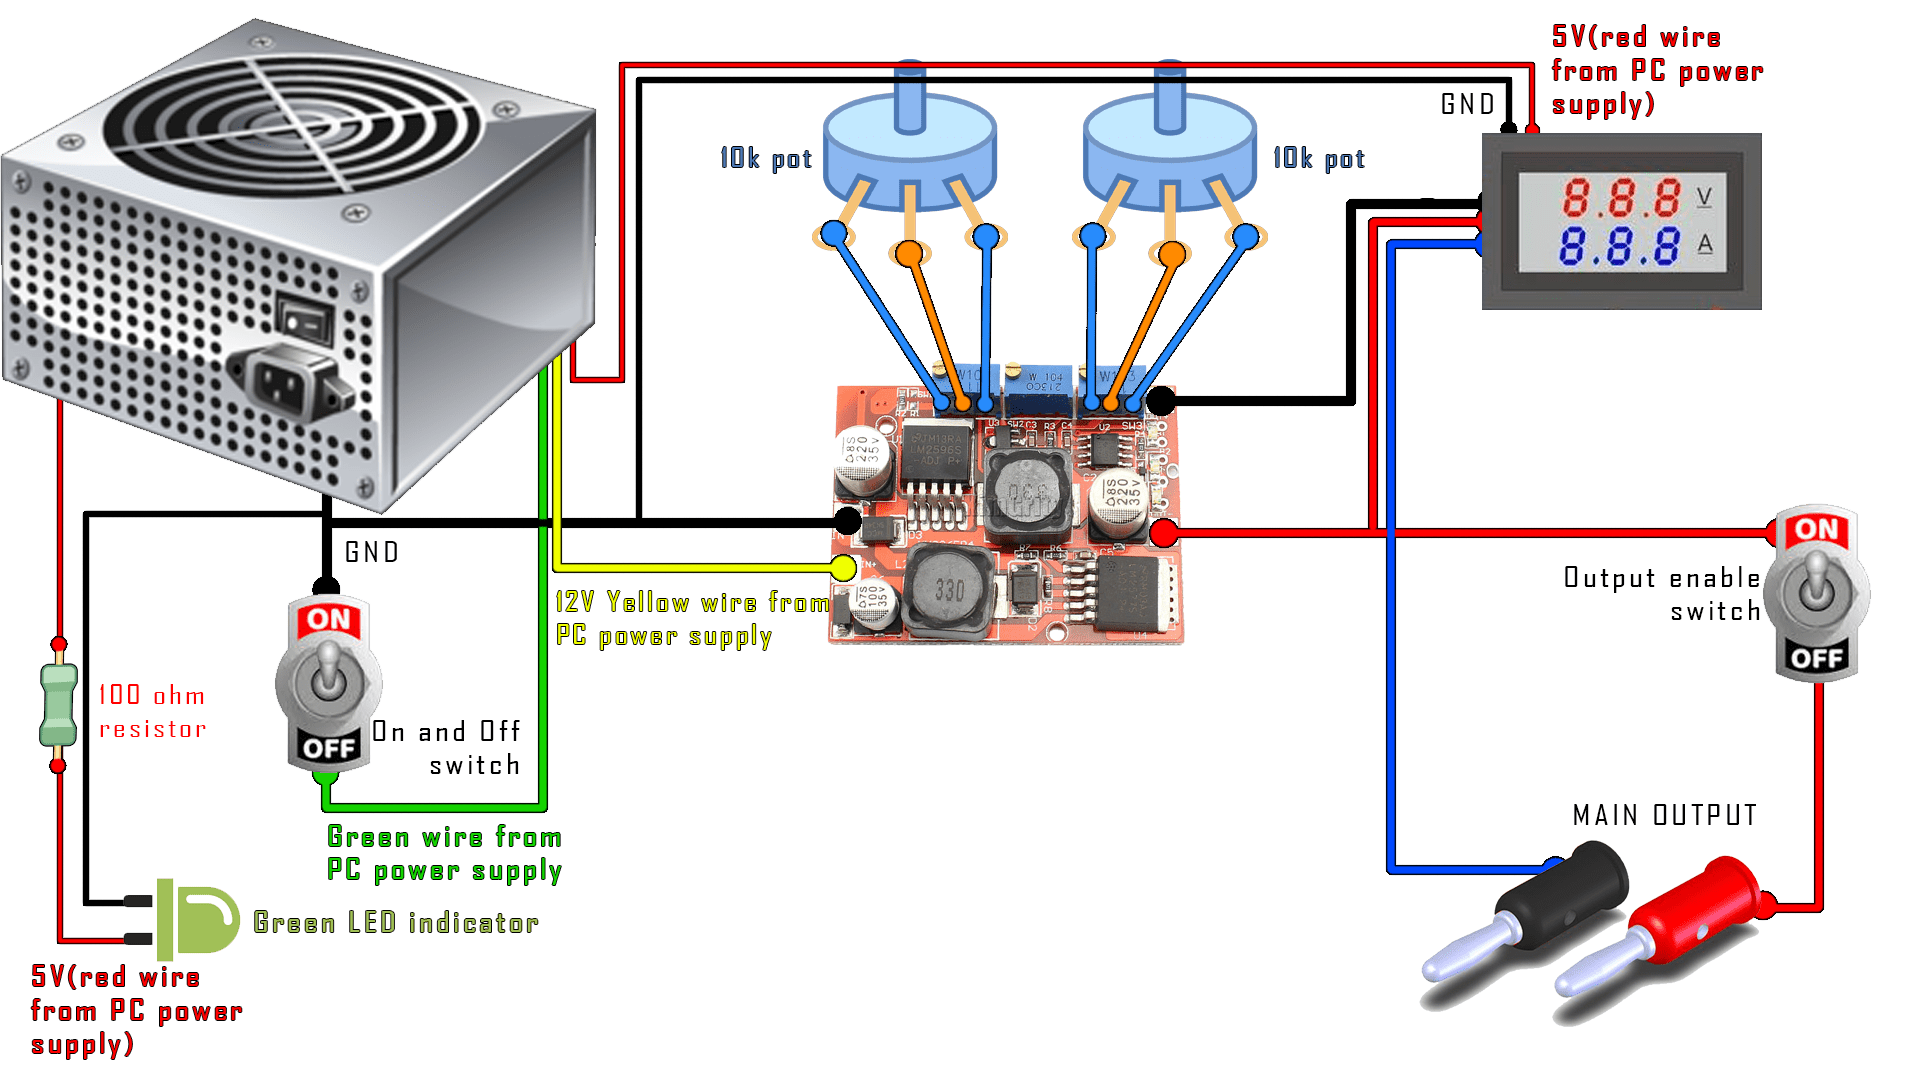 hight resolution of diy power supply pc boost buck converter display schematic diagram indicating the power supply voltmeter ammeter and